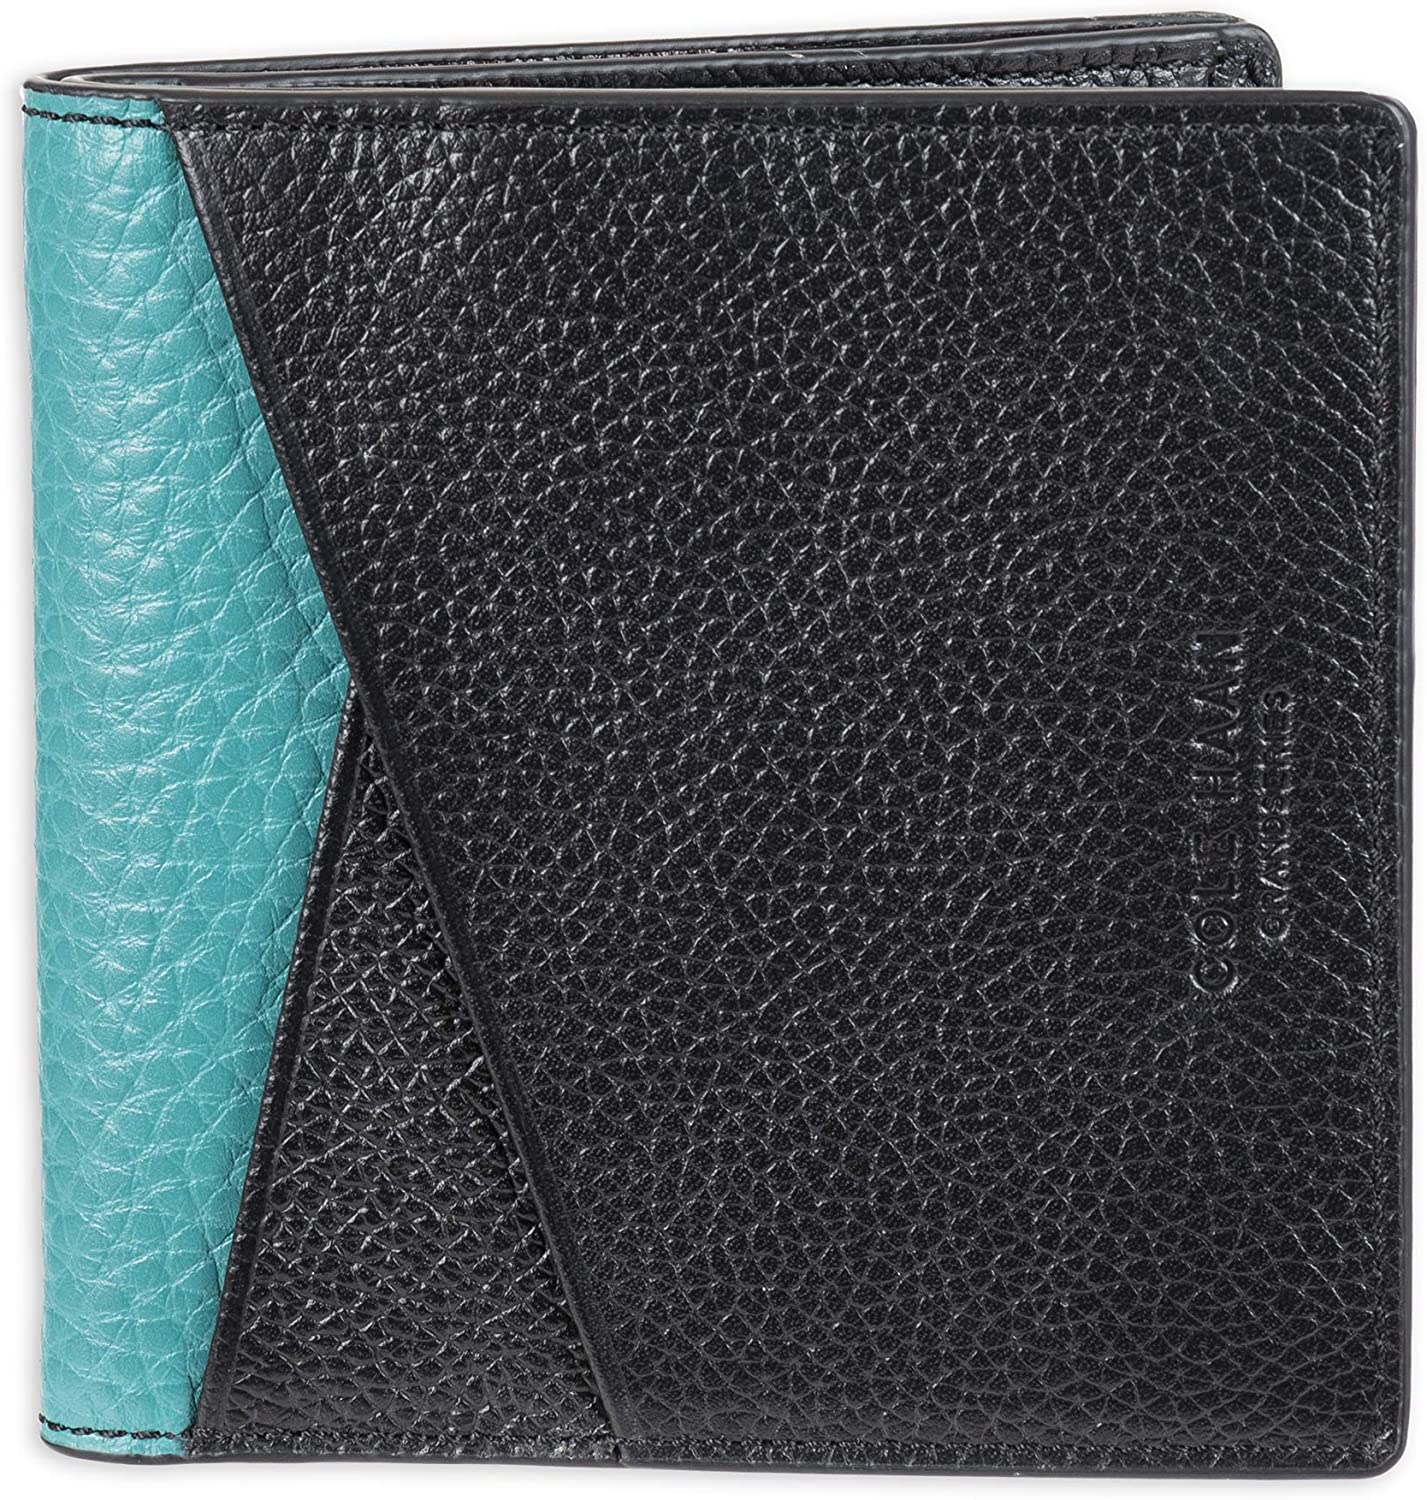 Cole Haan Men's Grand Series Color Block Leather Duofold Card Case Wallet